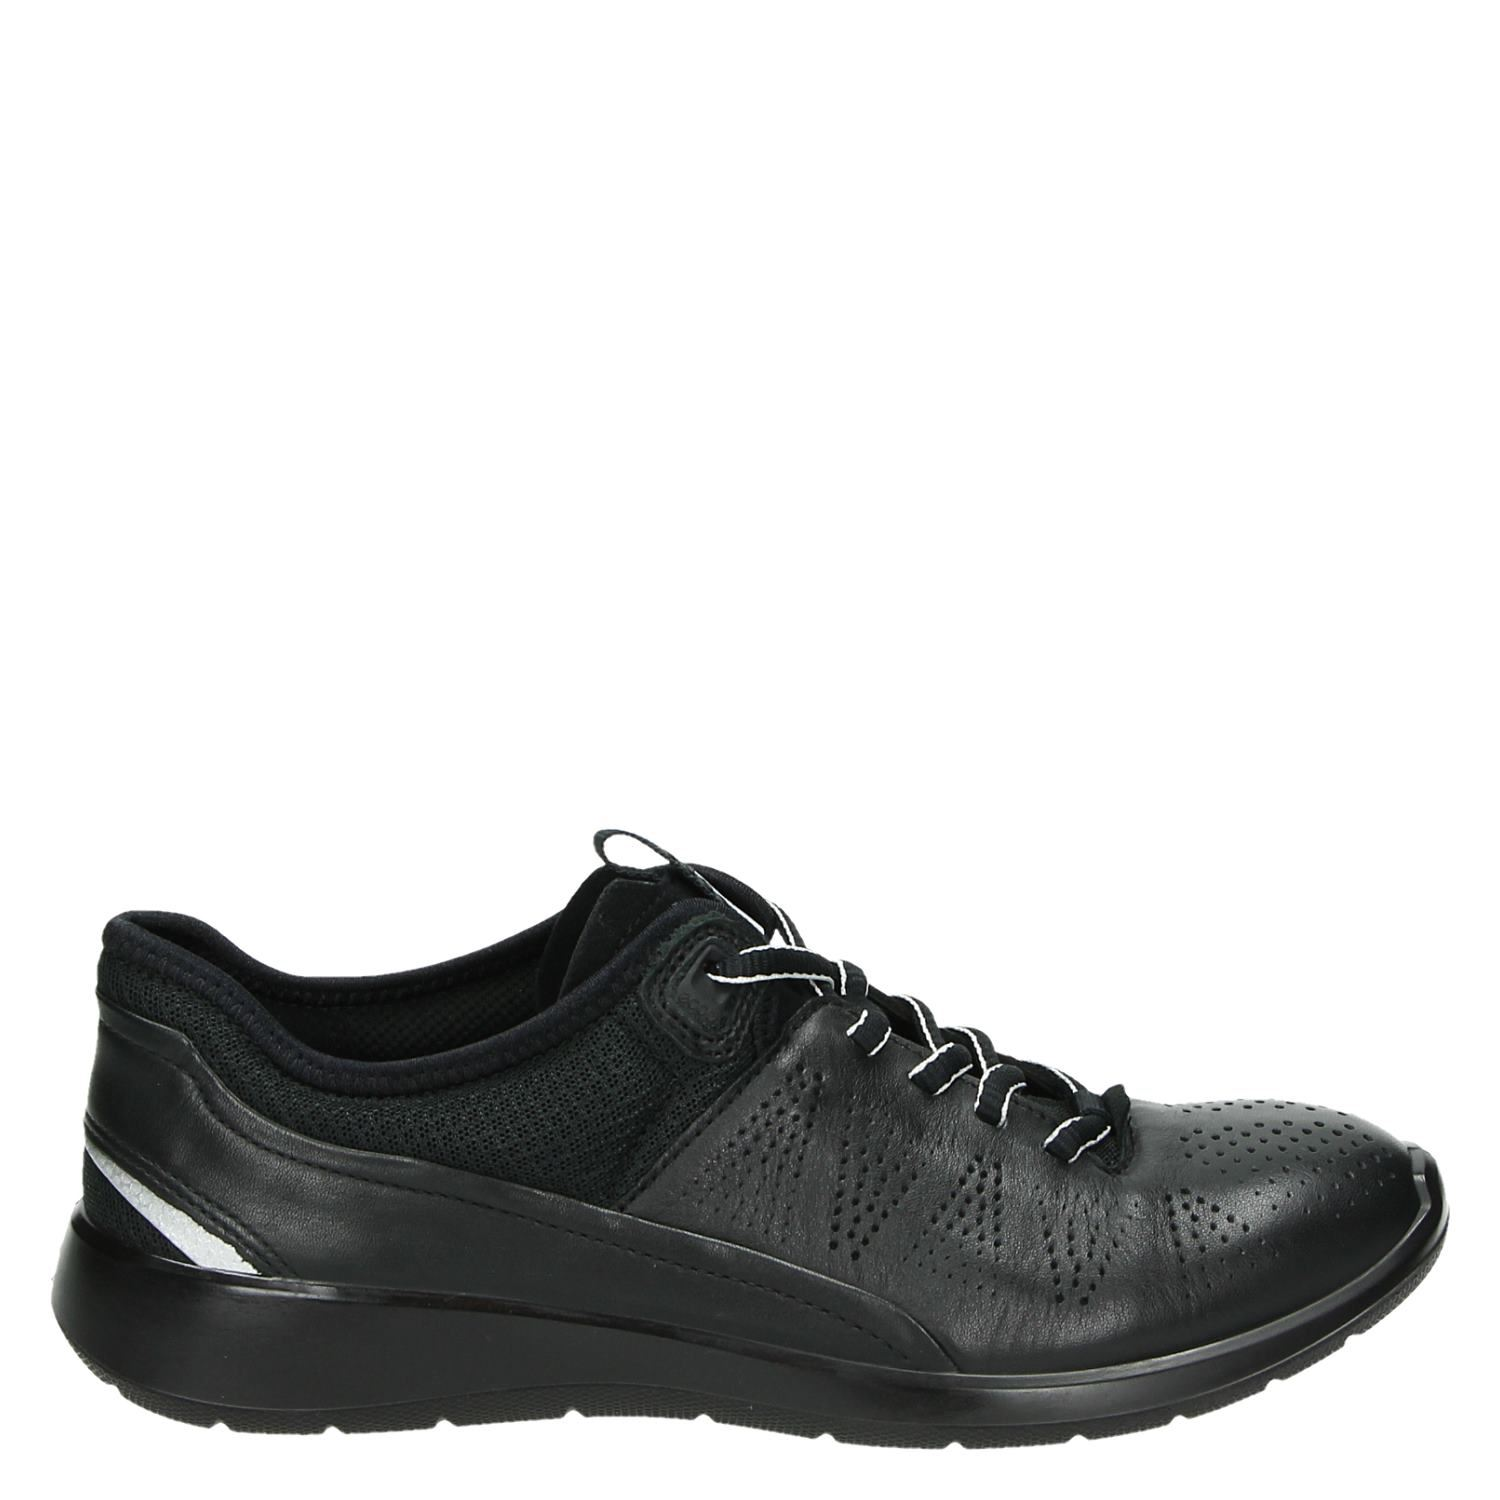 - Ecco Soft 5 veterschoenen